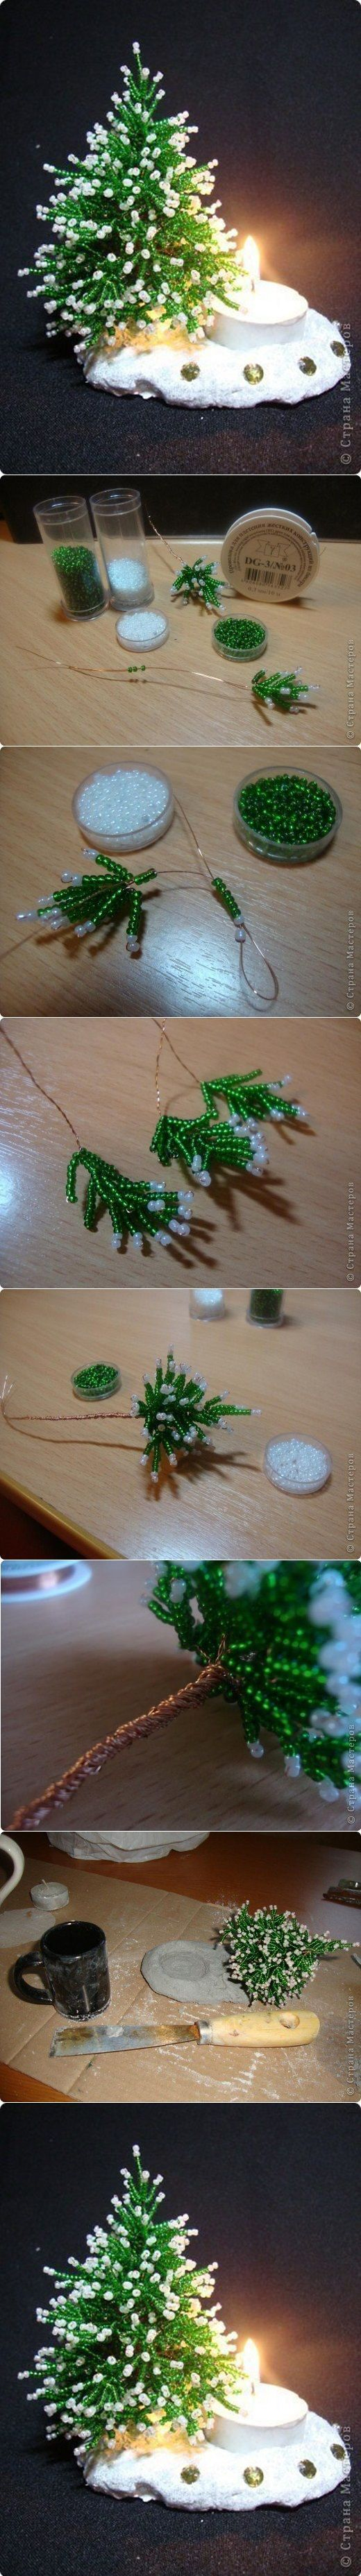 ✔ Tutorial for Beaded Miniature Christmas Tree, site is in Russian, use a translator for English.